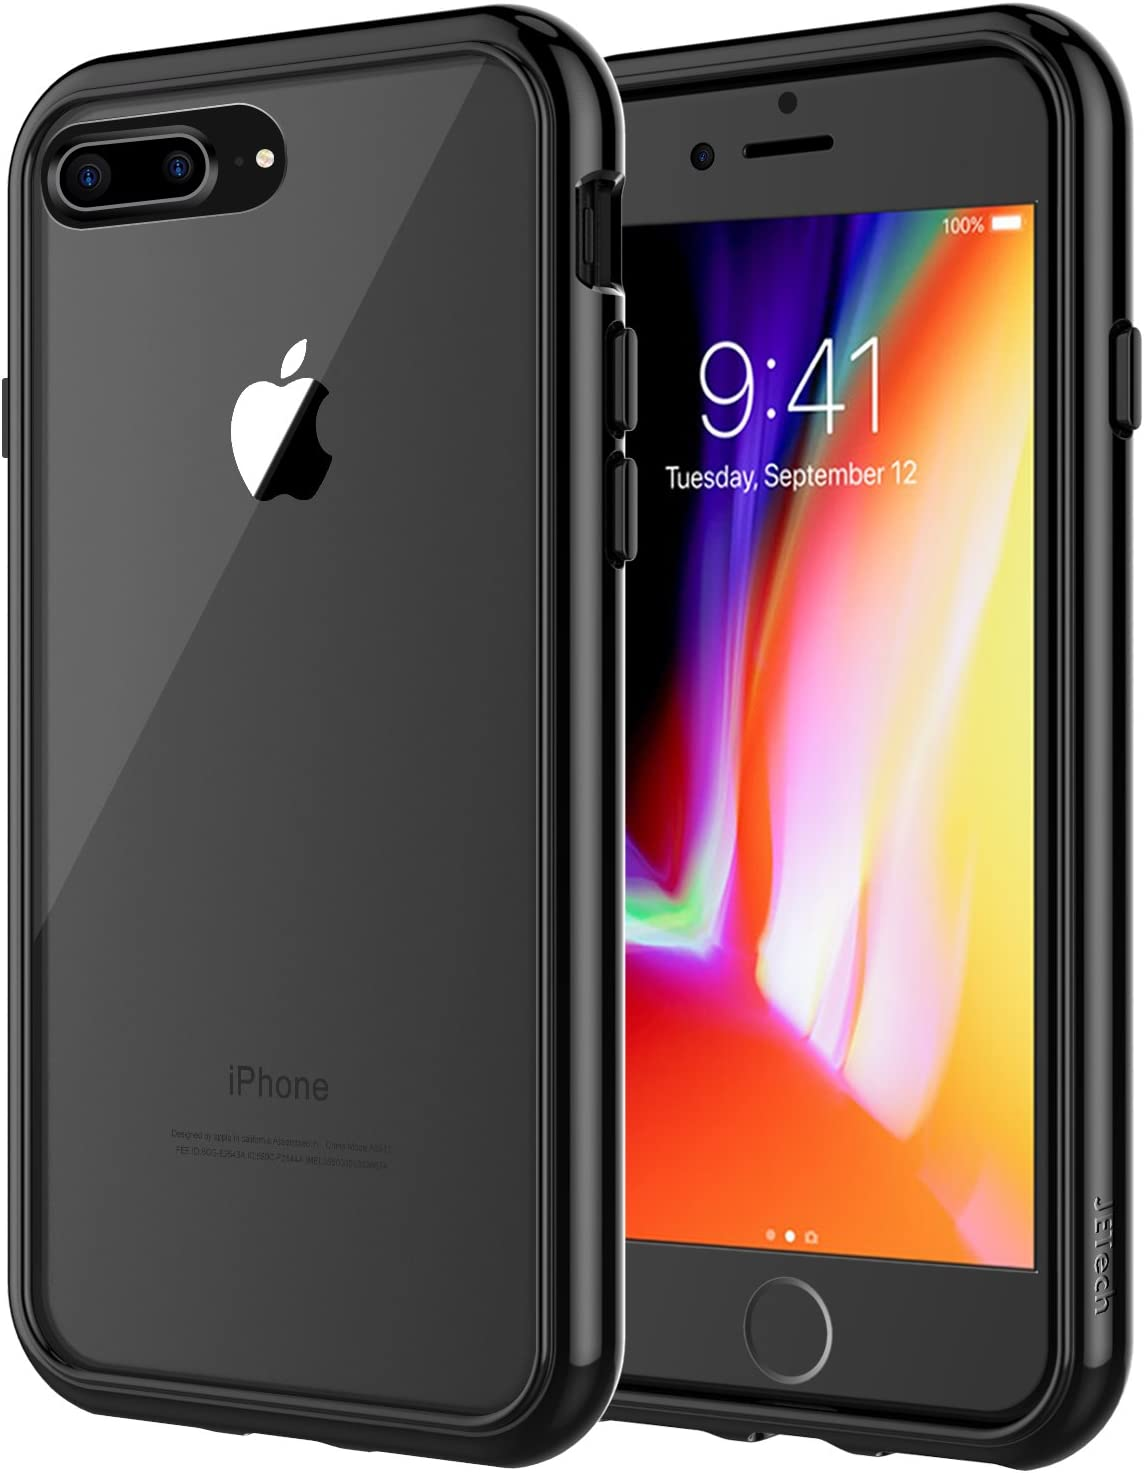 JETech 3431 Case for Apple iPhone 8 Plus and iPhone 7 Plus, Shock-Absorption Bumper Cover, Black